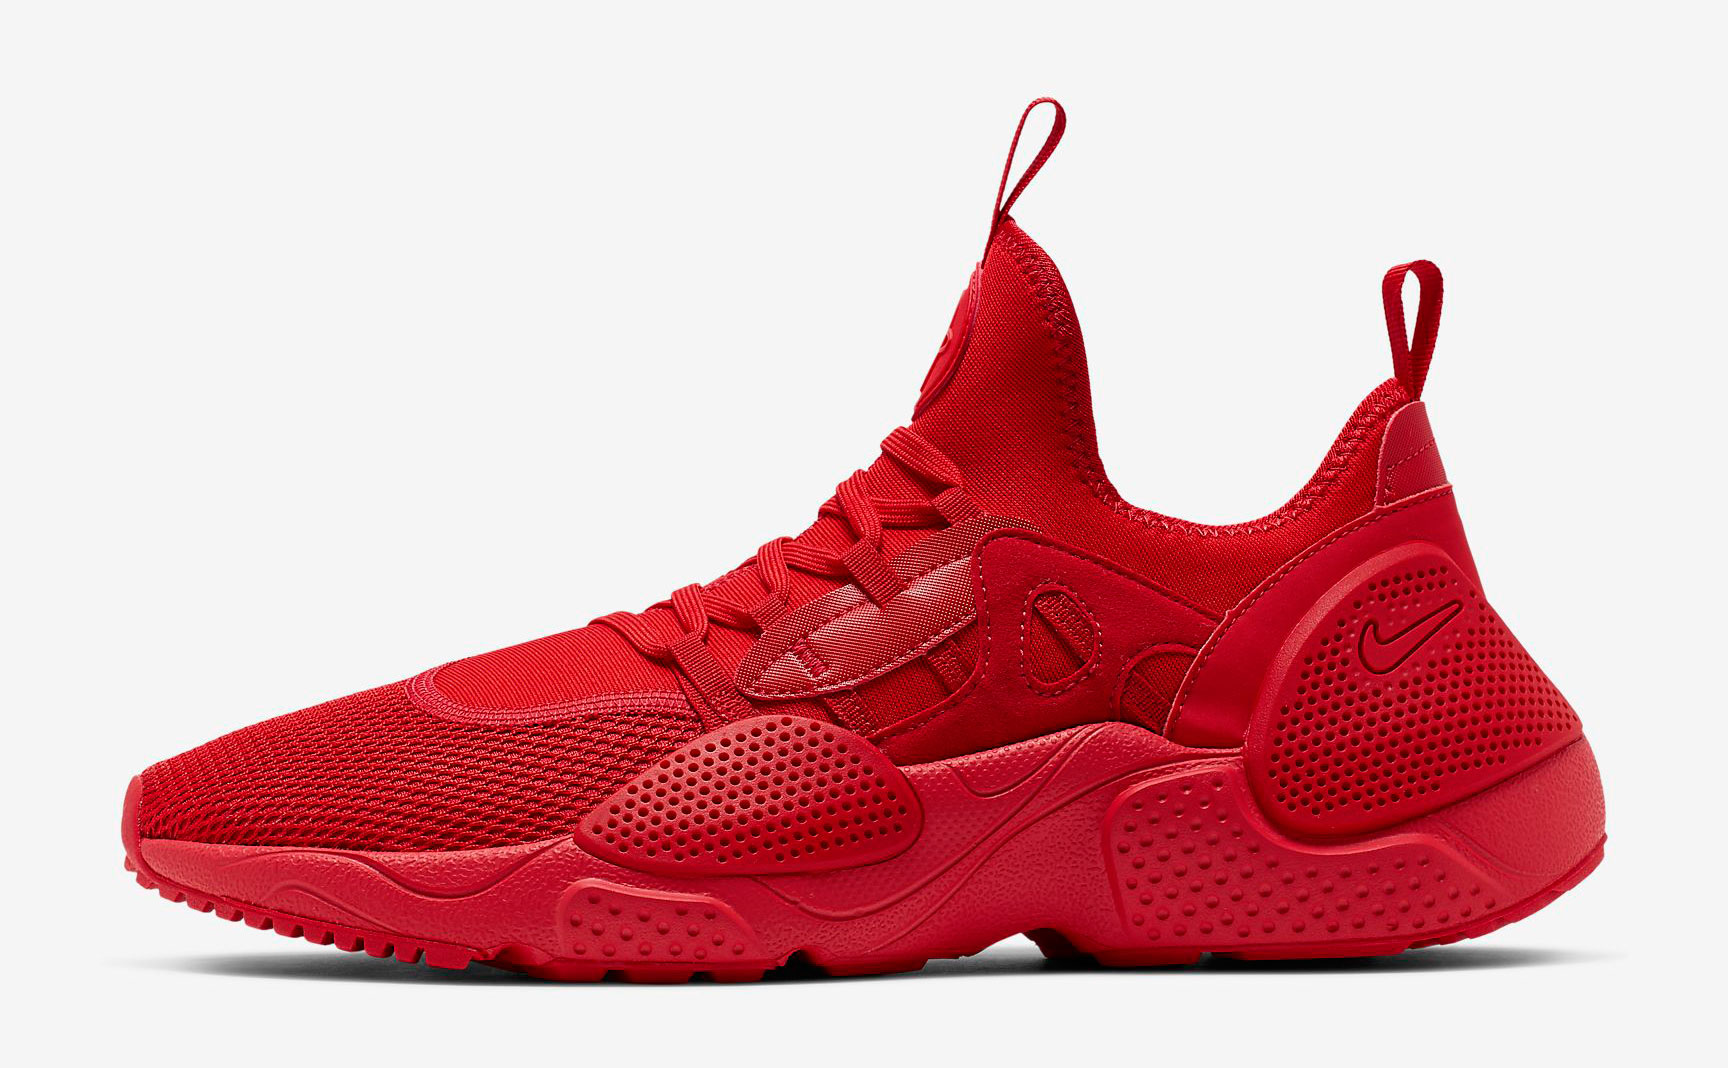 nike-air-huarache-edge-txt-university-red-release-date